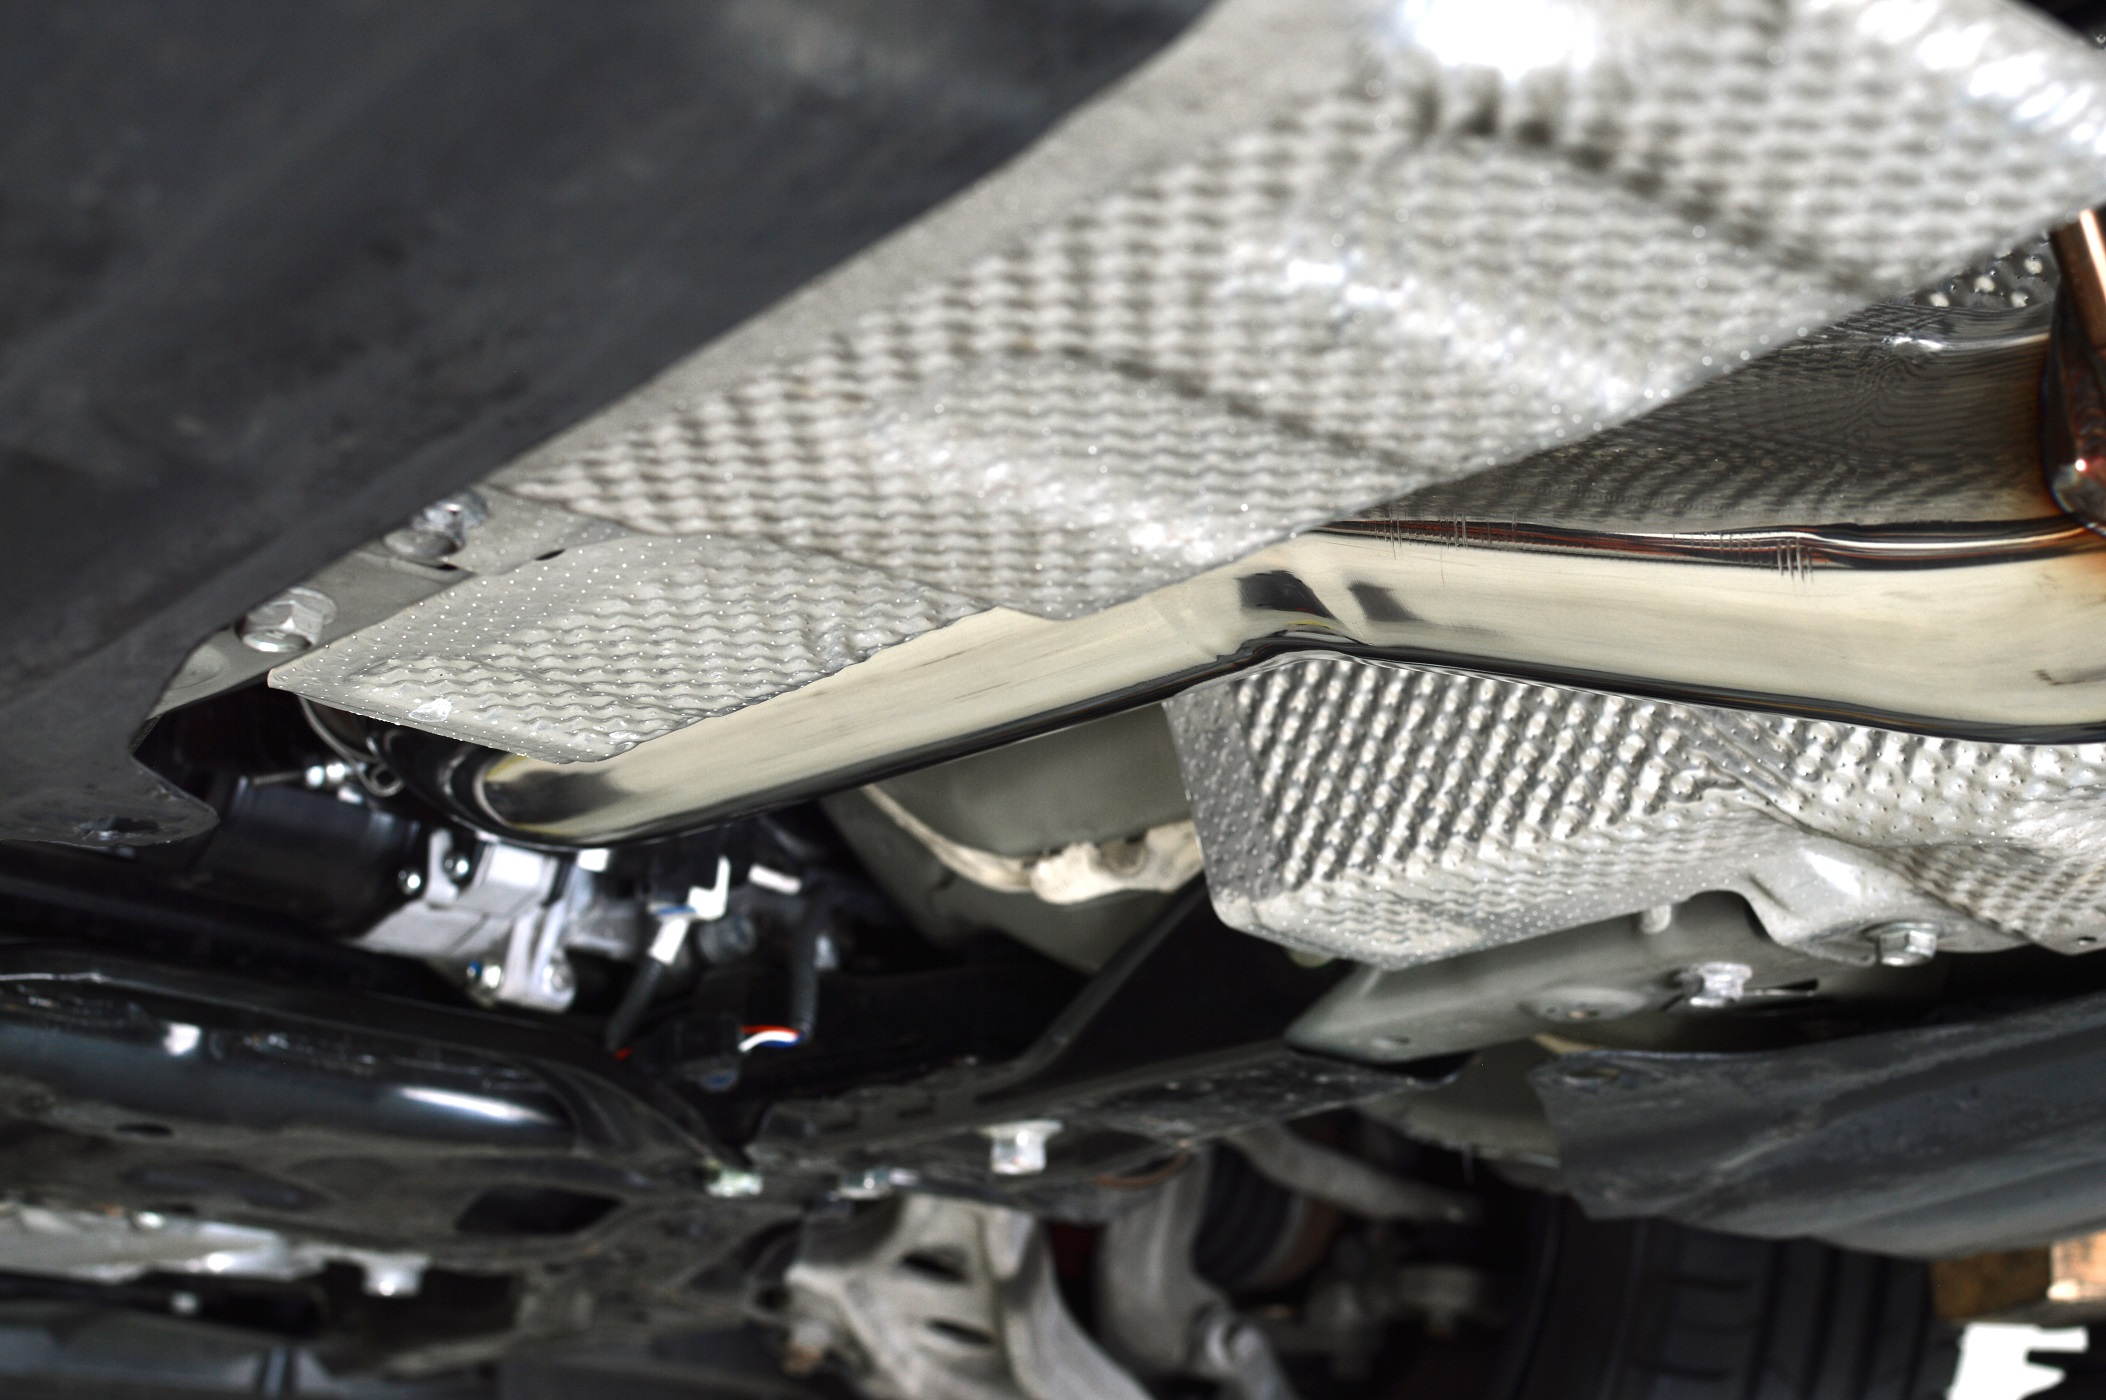 Clearance in all the right areas for your various under-car braces